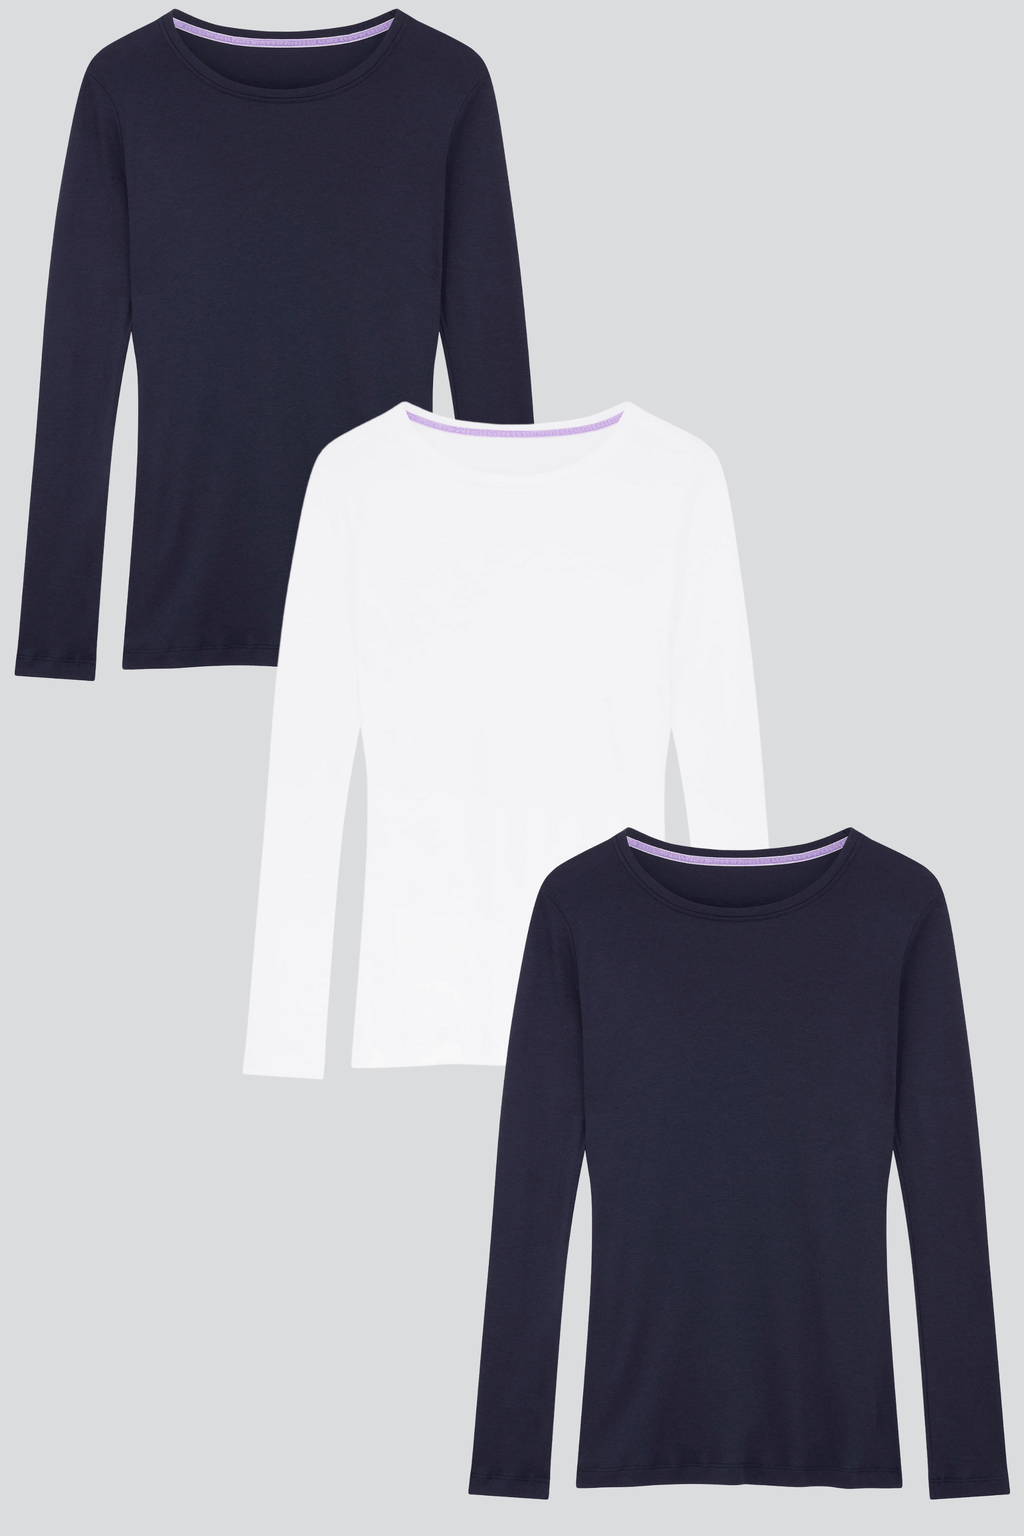 Long Sleeve Crew Neck Cotton Modal Blend T-shirt Bundle/ Multi Pack Womens T-shirts | Quality Womens T-shirts by Lavender Hill Clothing